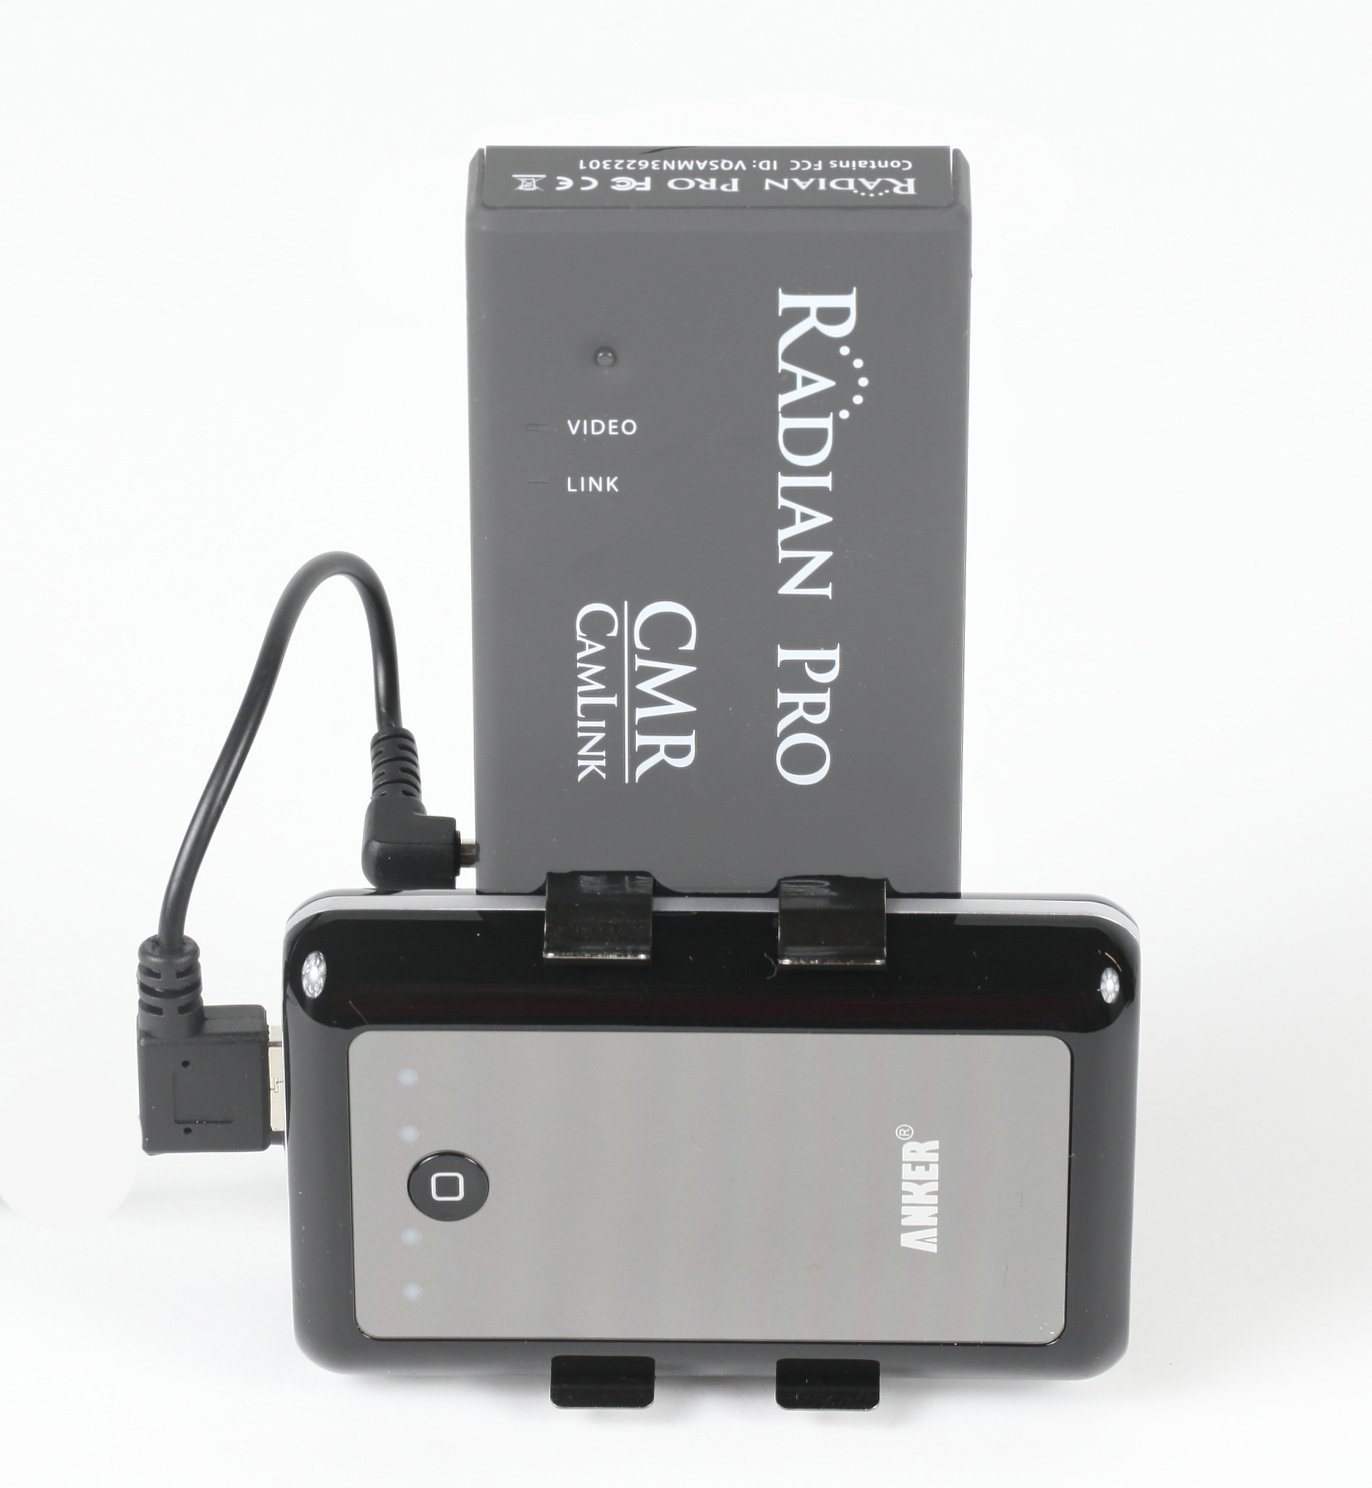 CamLink Wireless HD Receiver Monitor Mount with Battery. Supports:Radian MC, Radian Pro, Paralinx Arrow, Original Nyrius Aries Pro, IDX CW1, Came-TV SP02 Receivers